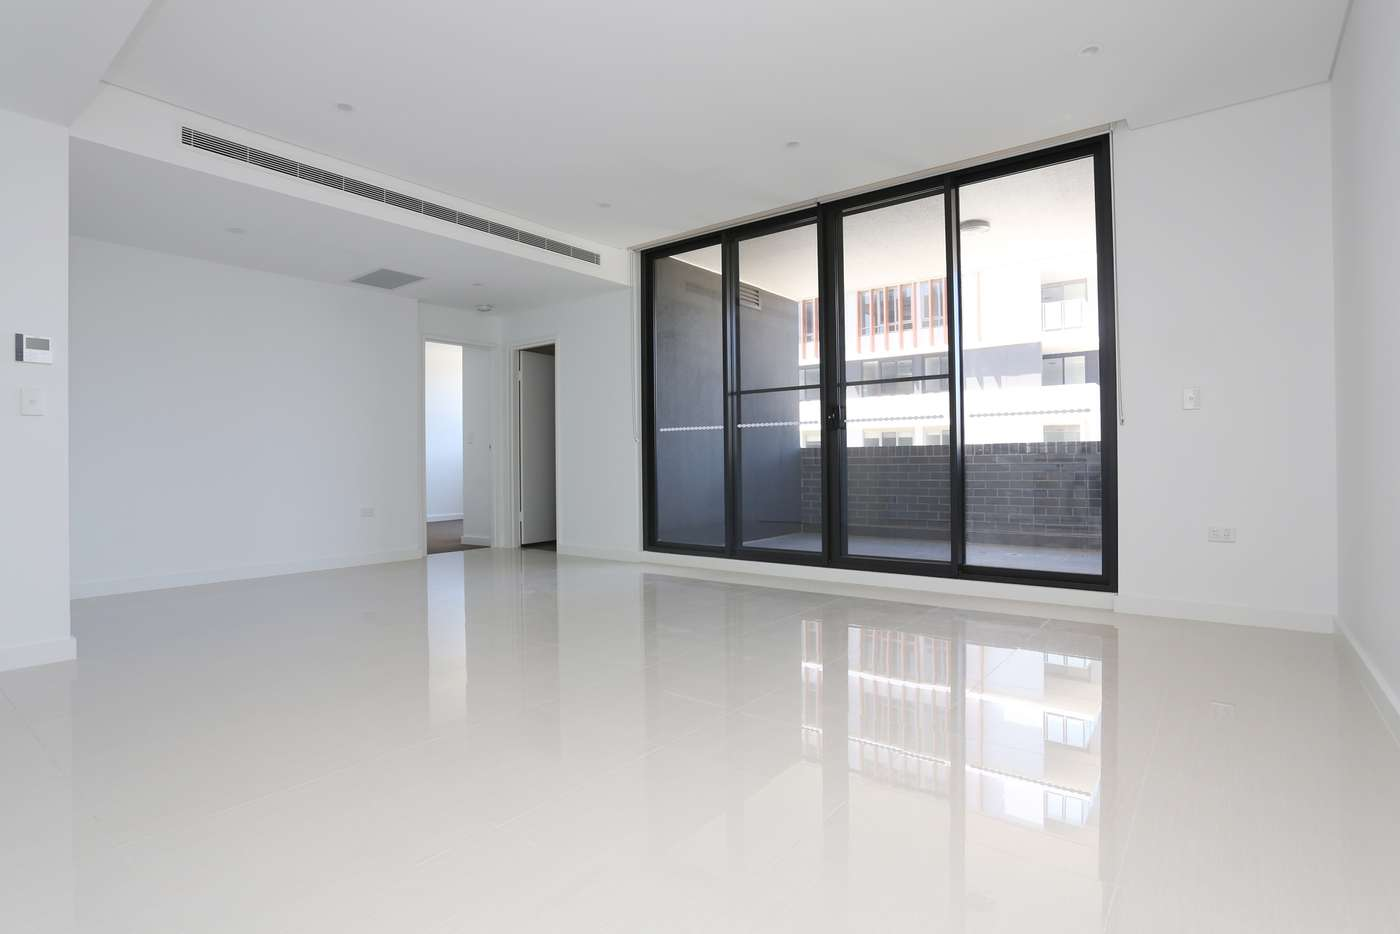 Main view of Homely apartment listing, 7202/1A Morton Street, Parramatta NSW 2150